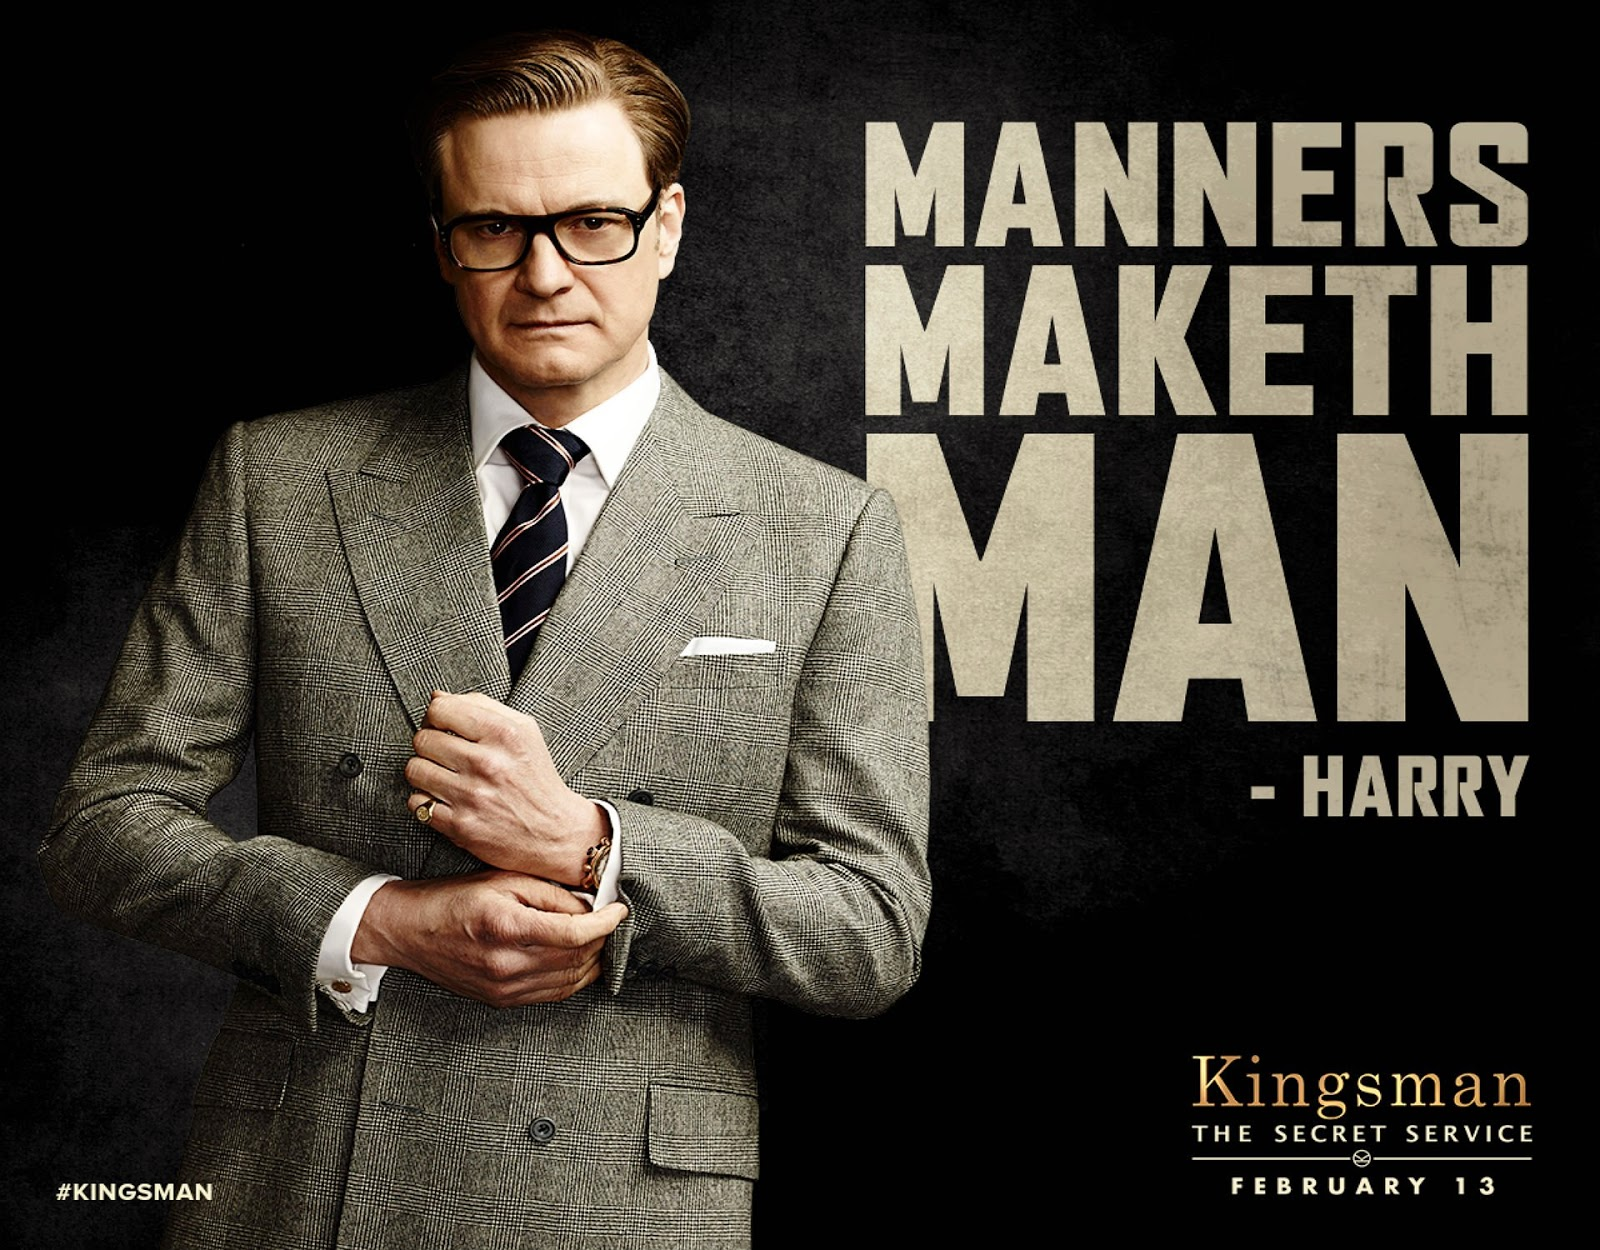 Kingsman The Secret Service Q A With: Watch Movies Online Free 2015